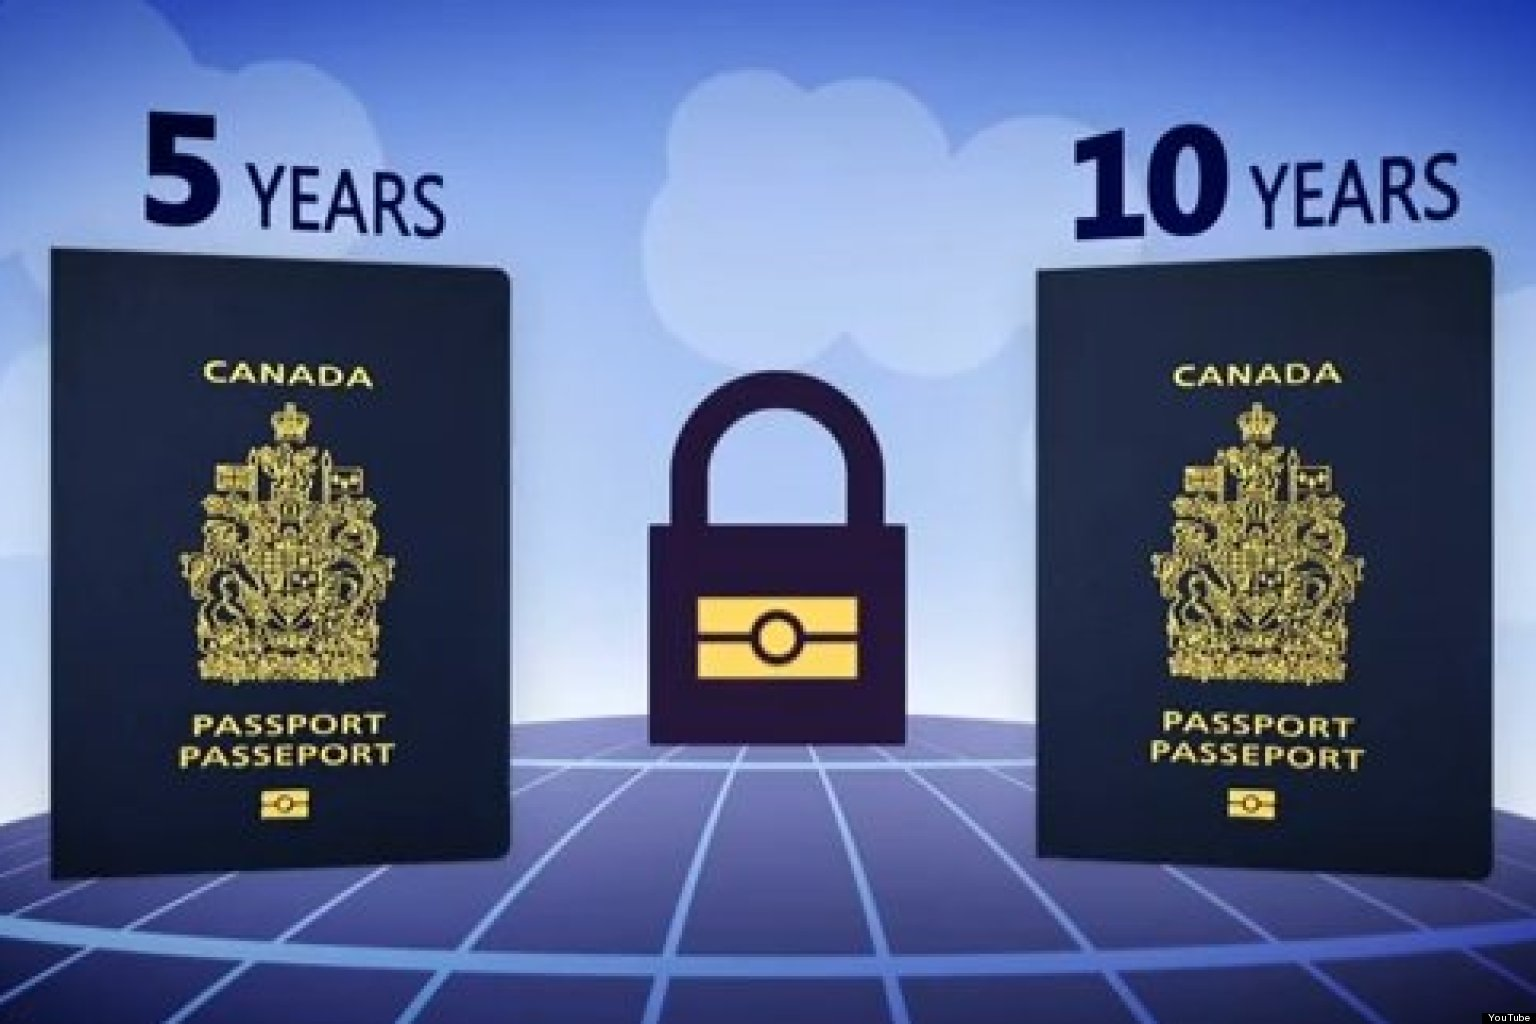 Passports Oepassportcanadafacebook Residents May Bring Their Fully Pleted Applications